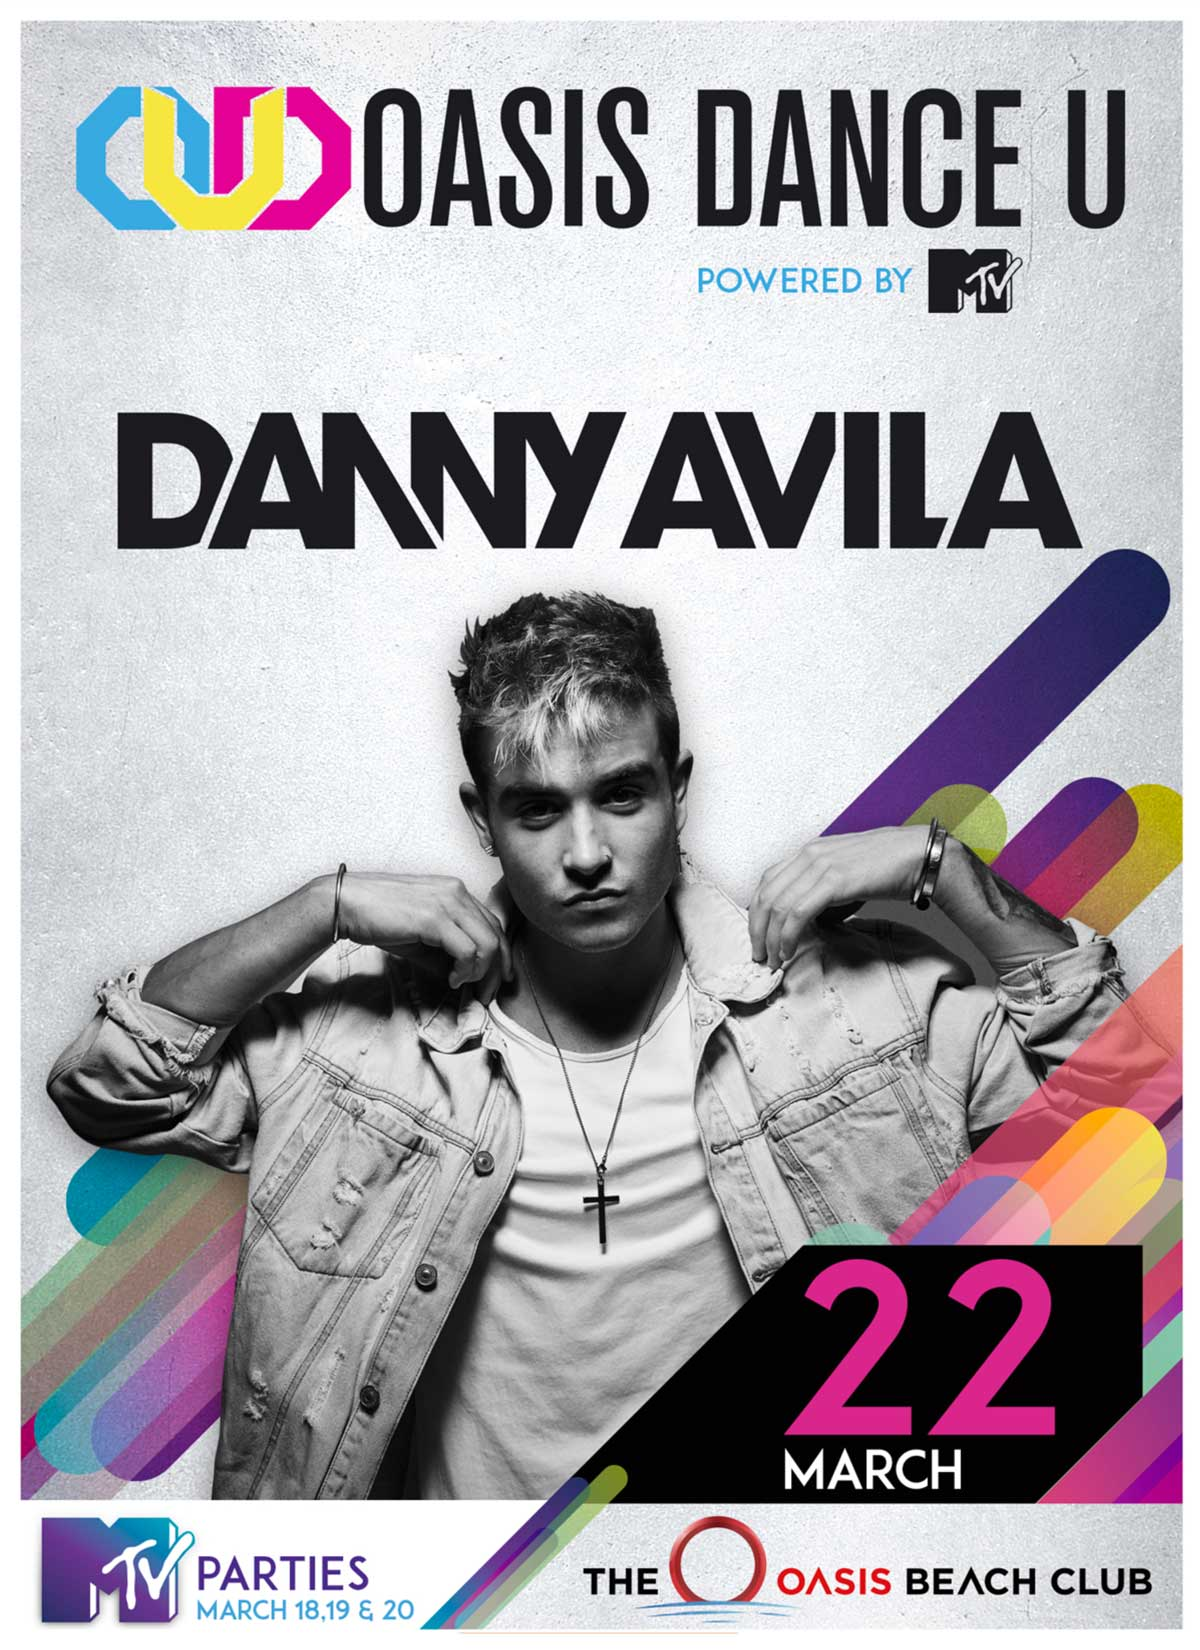 Danny Avila Oasis Cancun Spring Break DanceU March 22